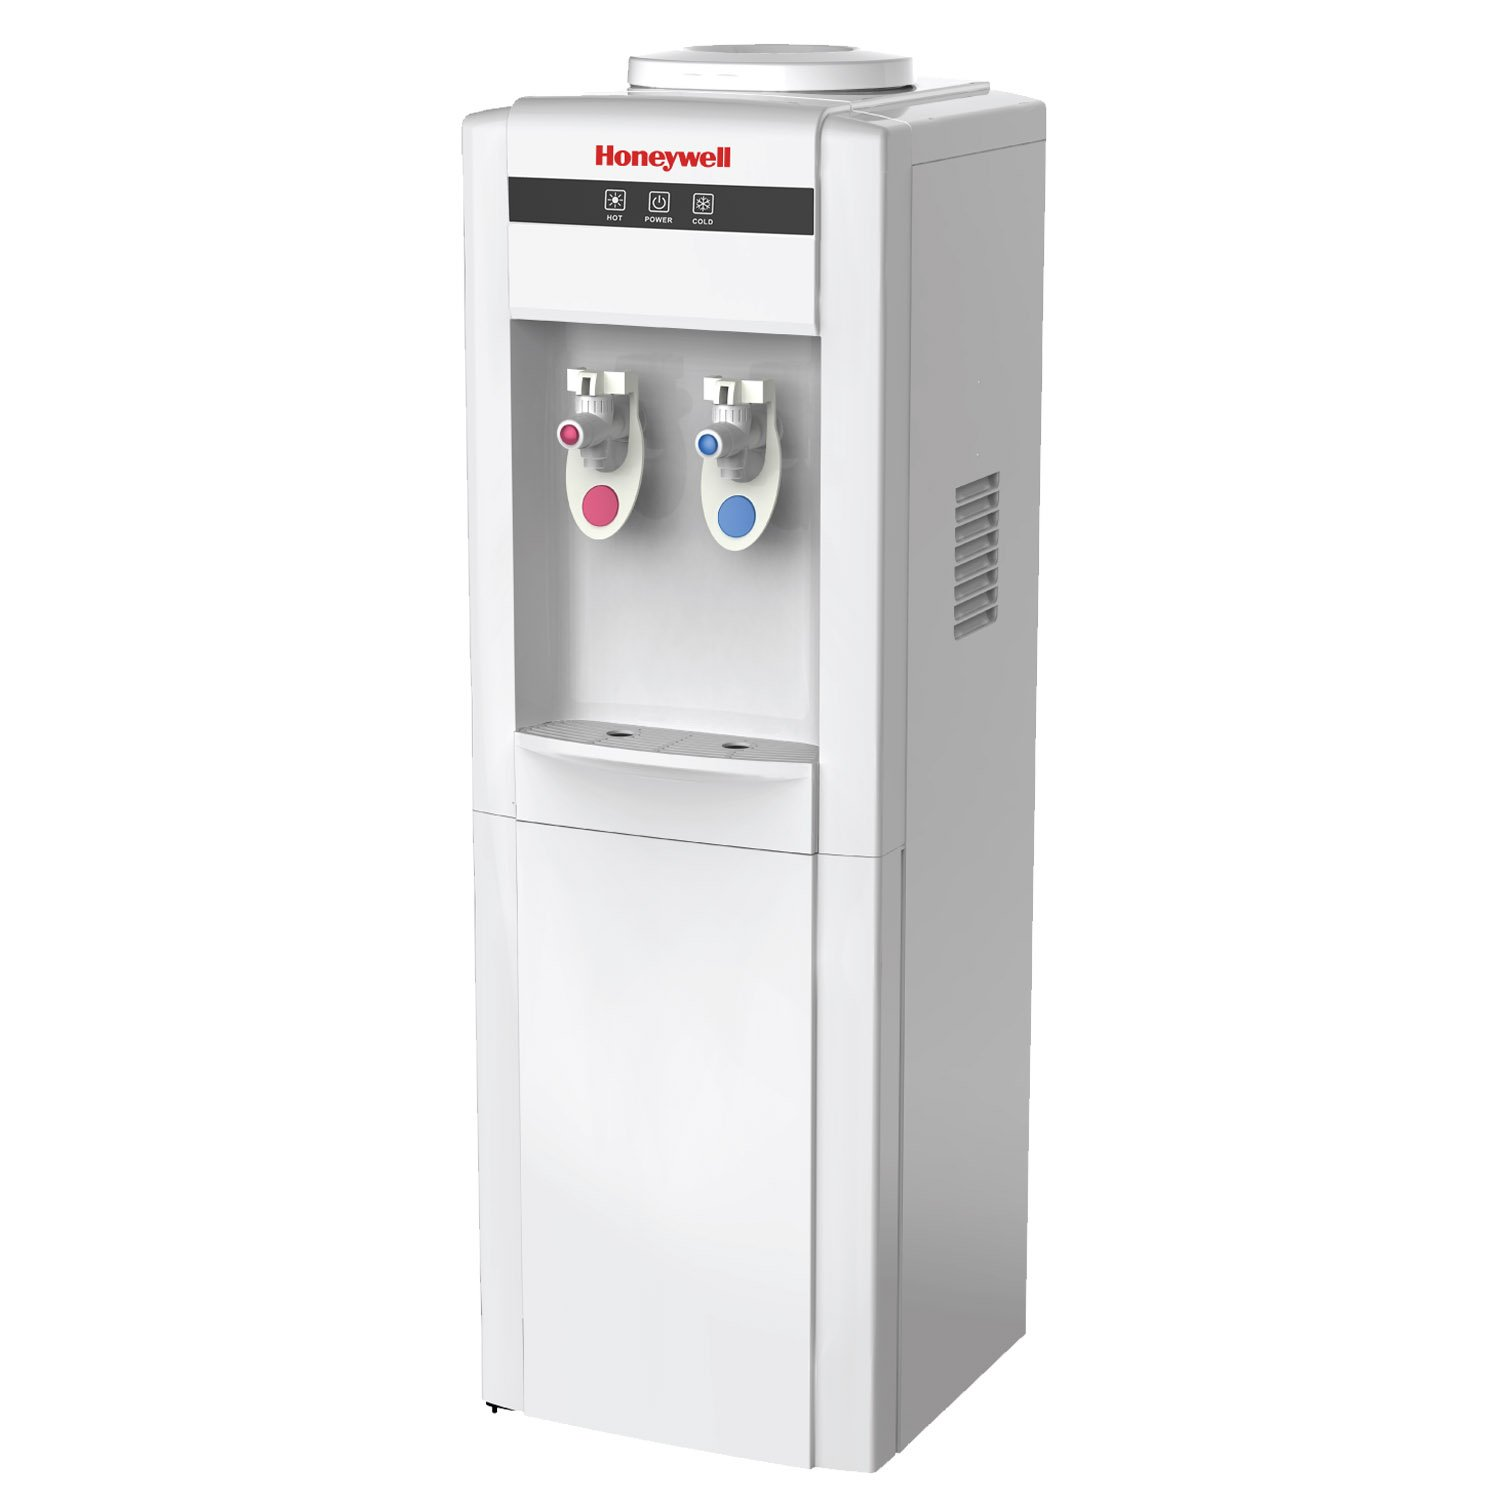 Honeywell HWB1052W Cabinet Freestanding Hot and Cold Water Dispenser with Stainless Steel Tank to help improve water taste and avoid corrosion, Child Safety Lock for Hot Water, White by Honeywell (Image #1)